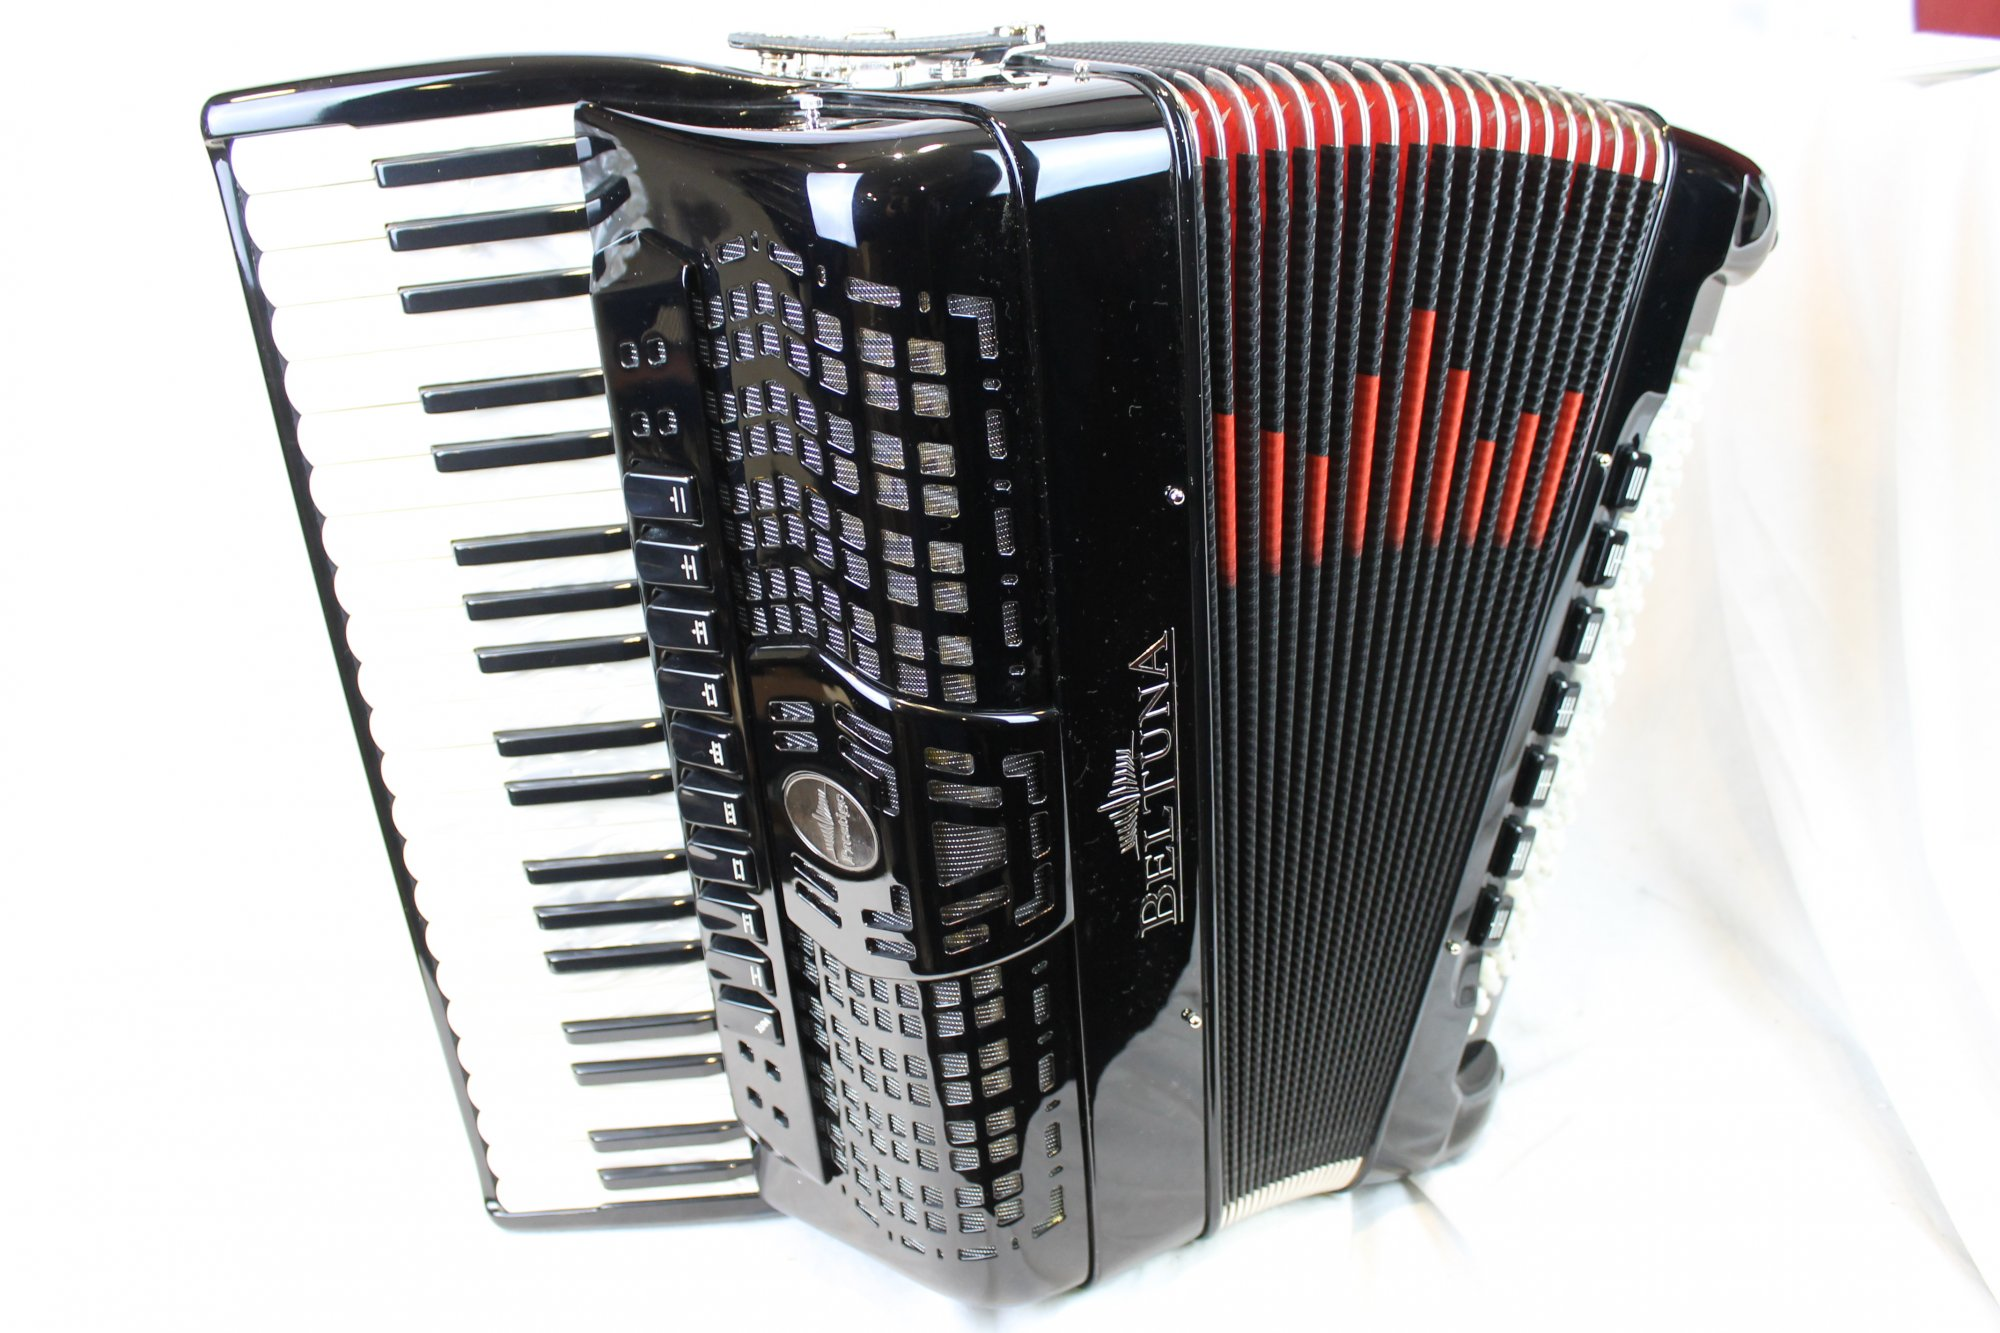 NEW Black Beltuna Prestige IV Piano Accordion LMMM 41 120